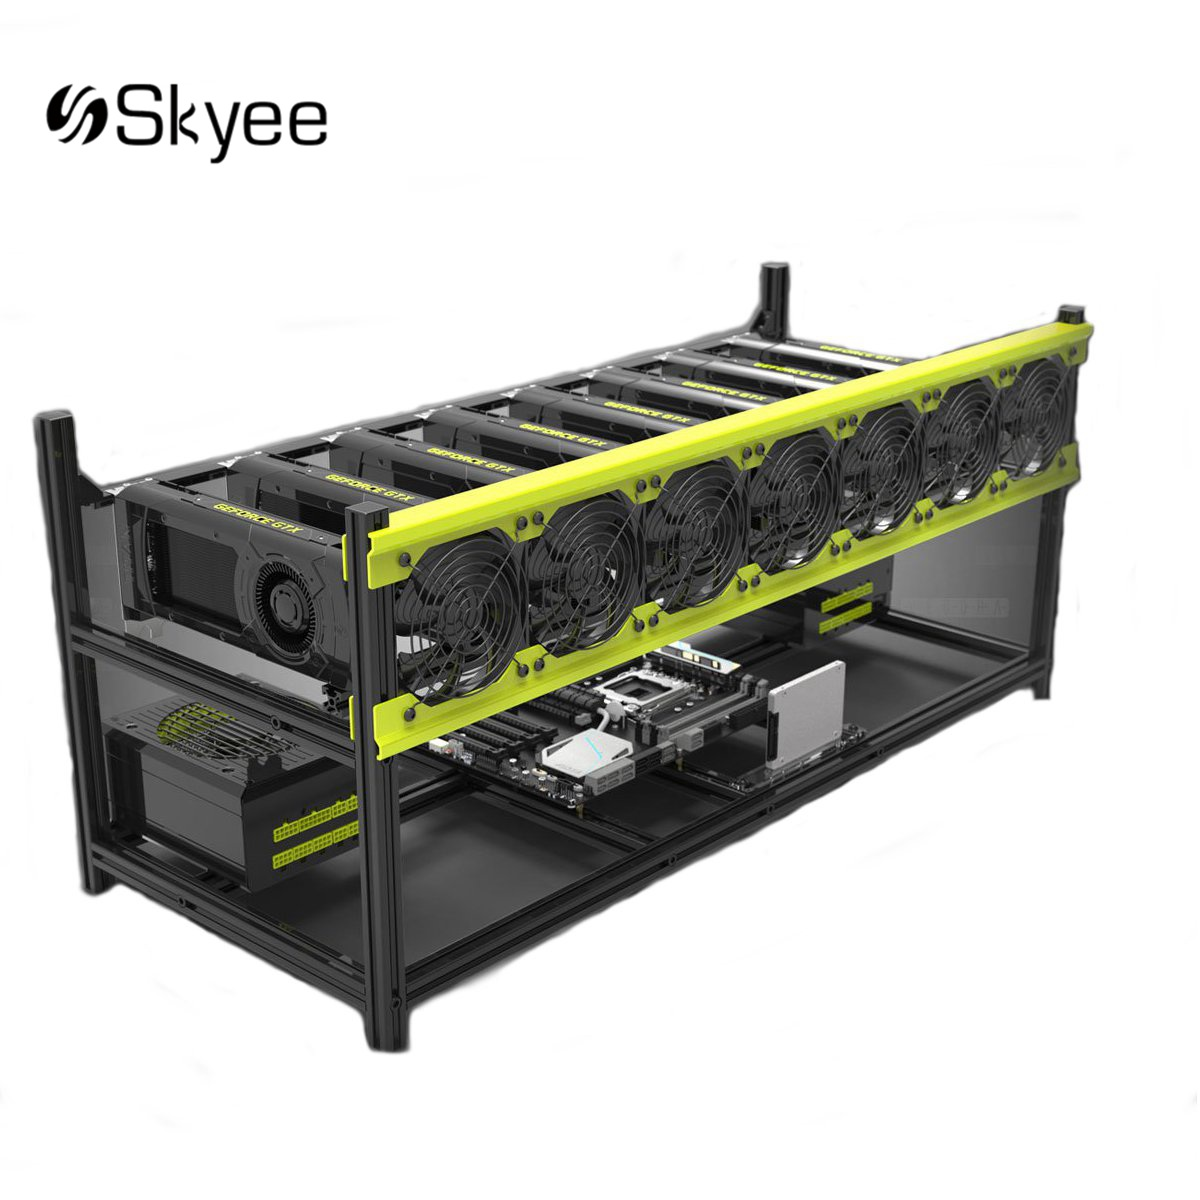 S SKYEE Open Air Mining Rig Stackable Dual Power Frame Case With 7 Fans for 8 GPU Ethereum Computer Mining Frame Server Chassis цена